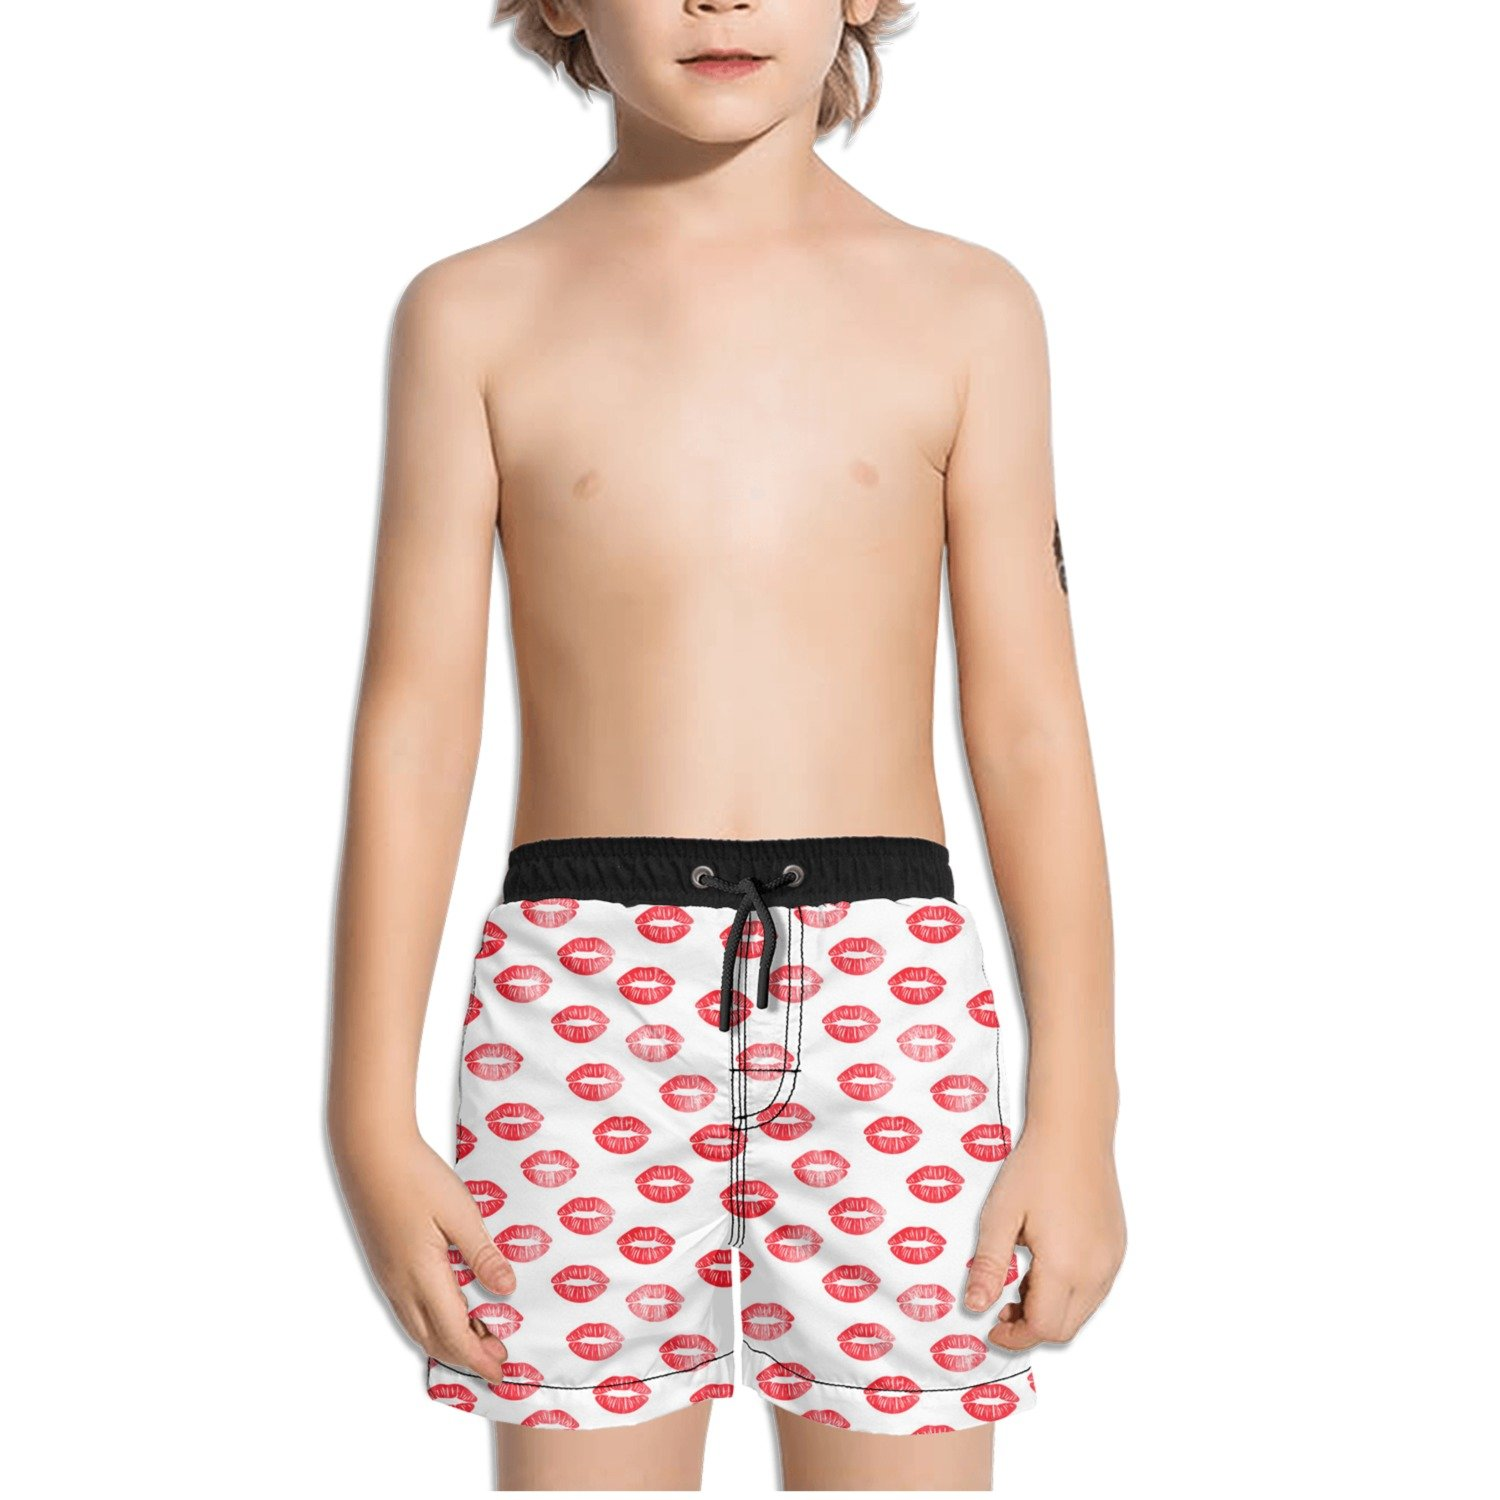 FullBo Red Kiss Lips Pattern Little Boy's Short Swim Trunks Quick Dry Beach Shorts